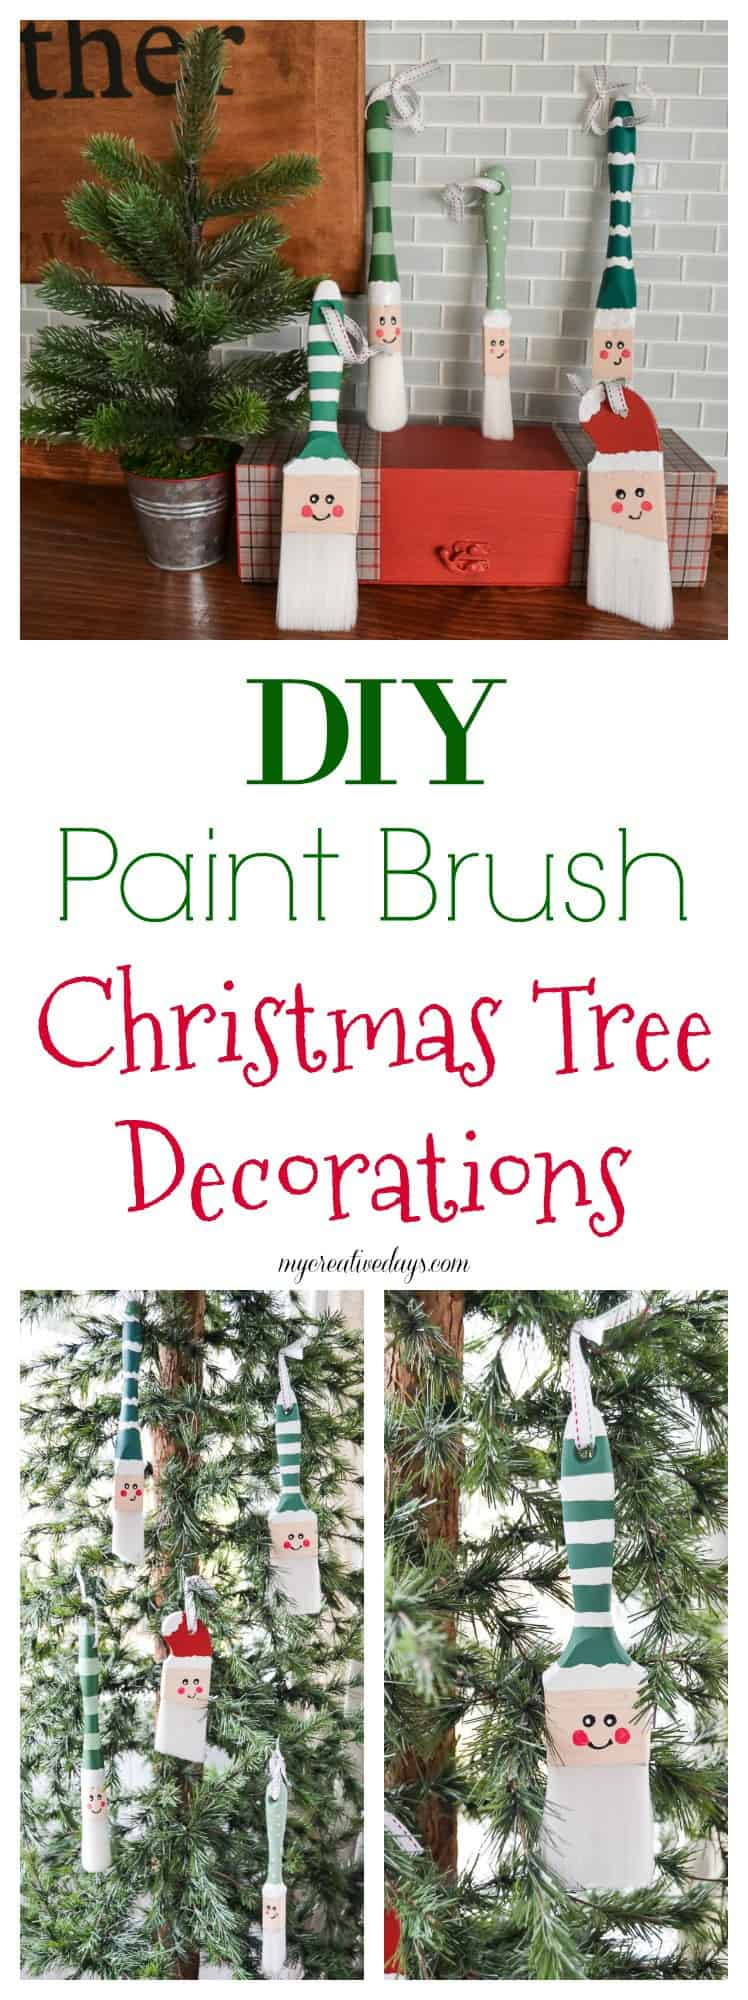 How To Make Santa Paint Brush Christmas Tree Decorations For The Tree